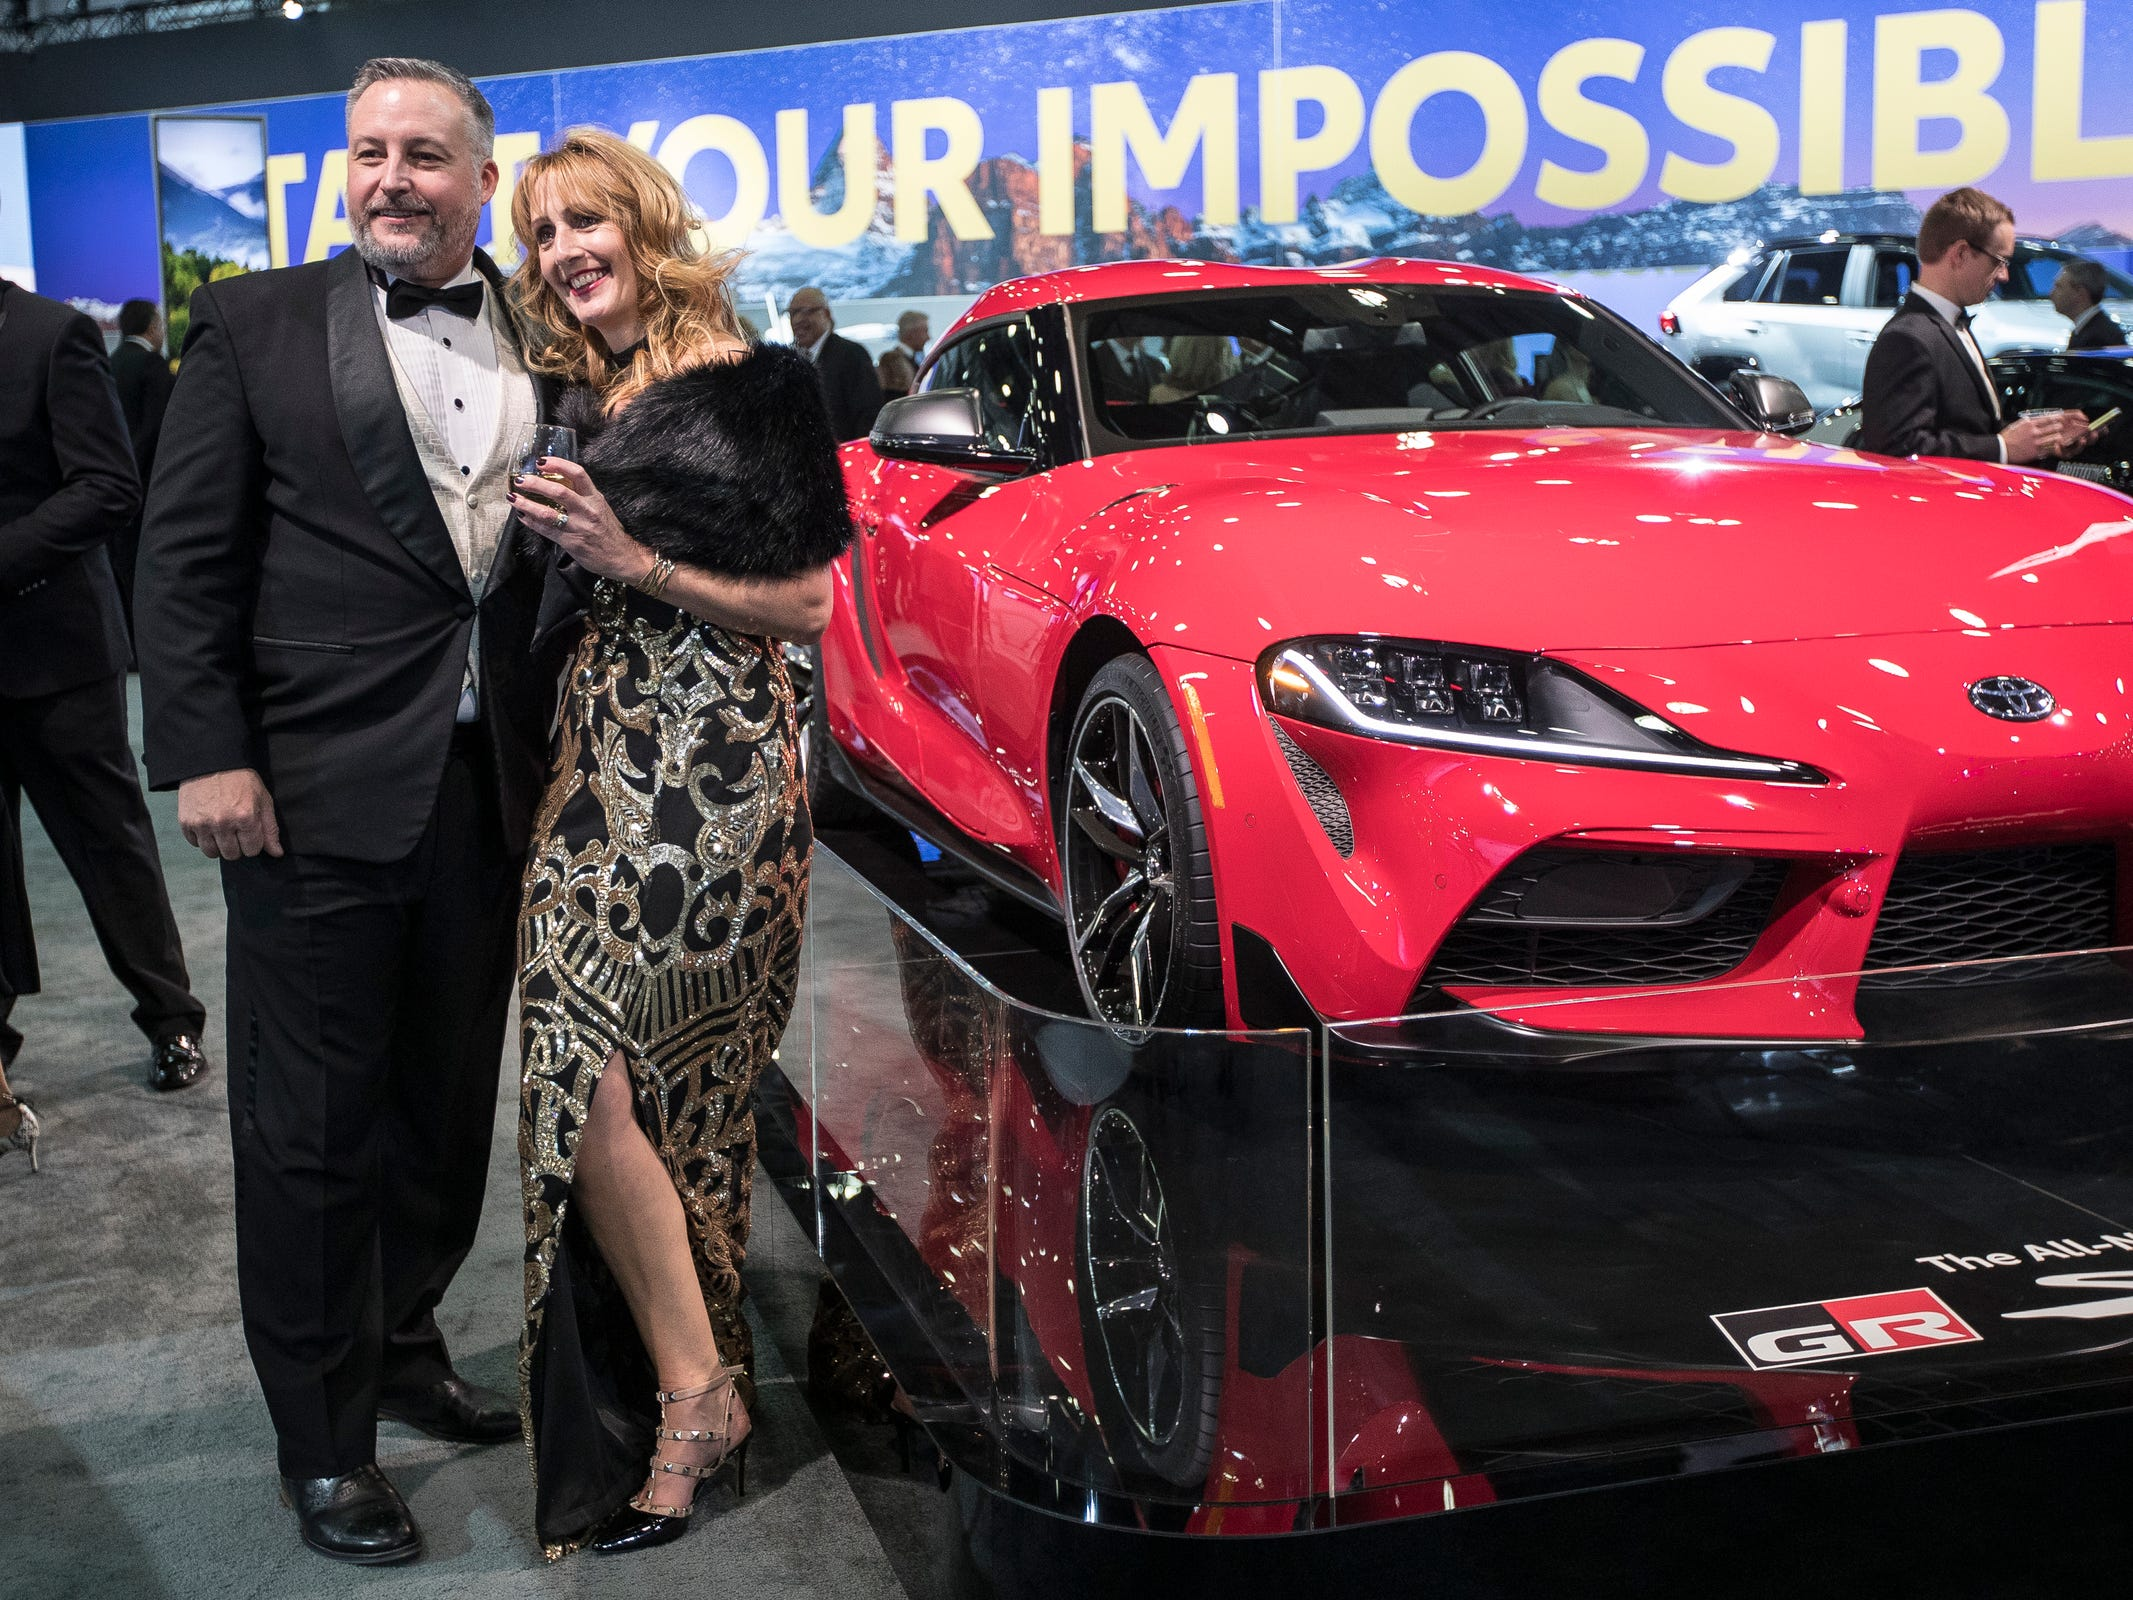 Paul and Jane Heasman of Rochester Hills pose for a phot next to 2019 Toyota Supra during the 2019 North American International Auto Show Charity Preview at Cobo Center in Detroit on Friday, January 18, 2019.